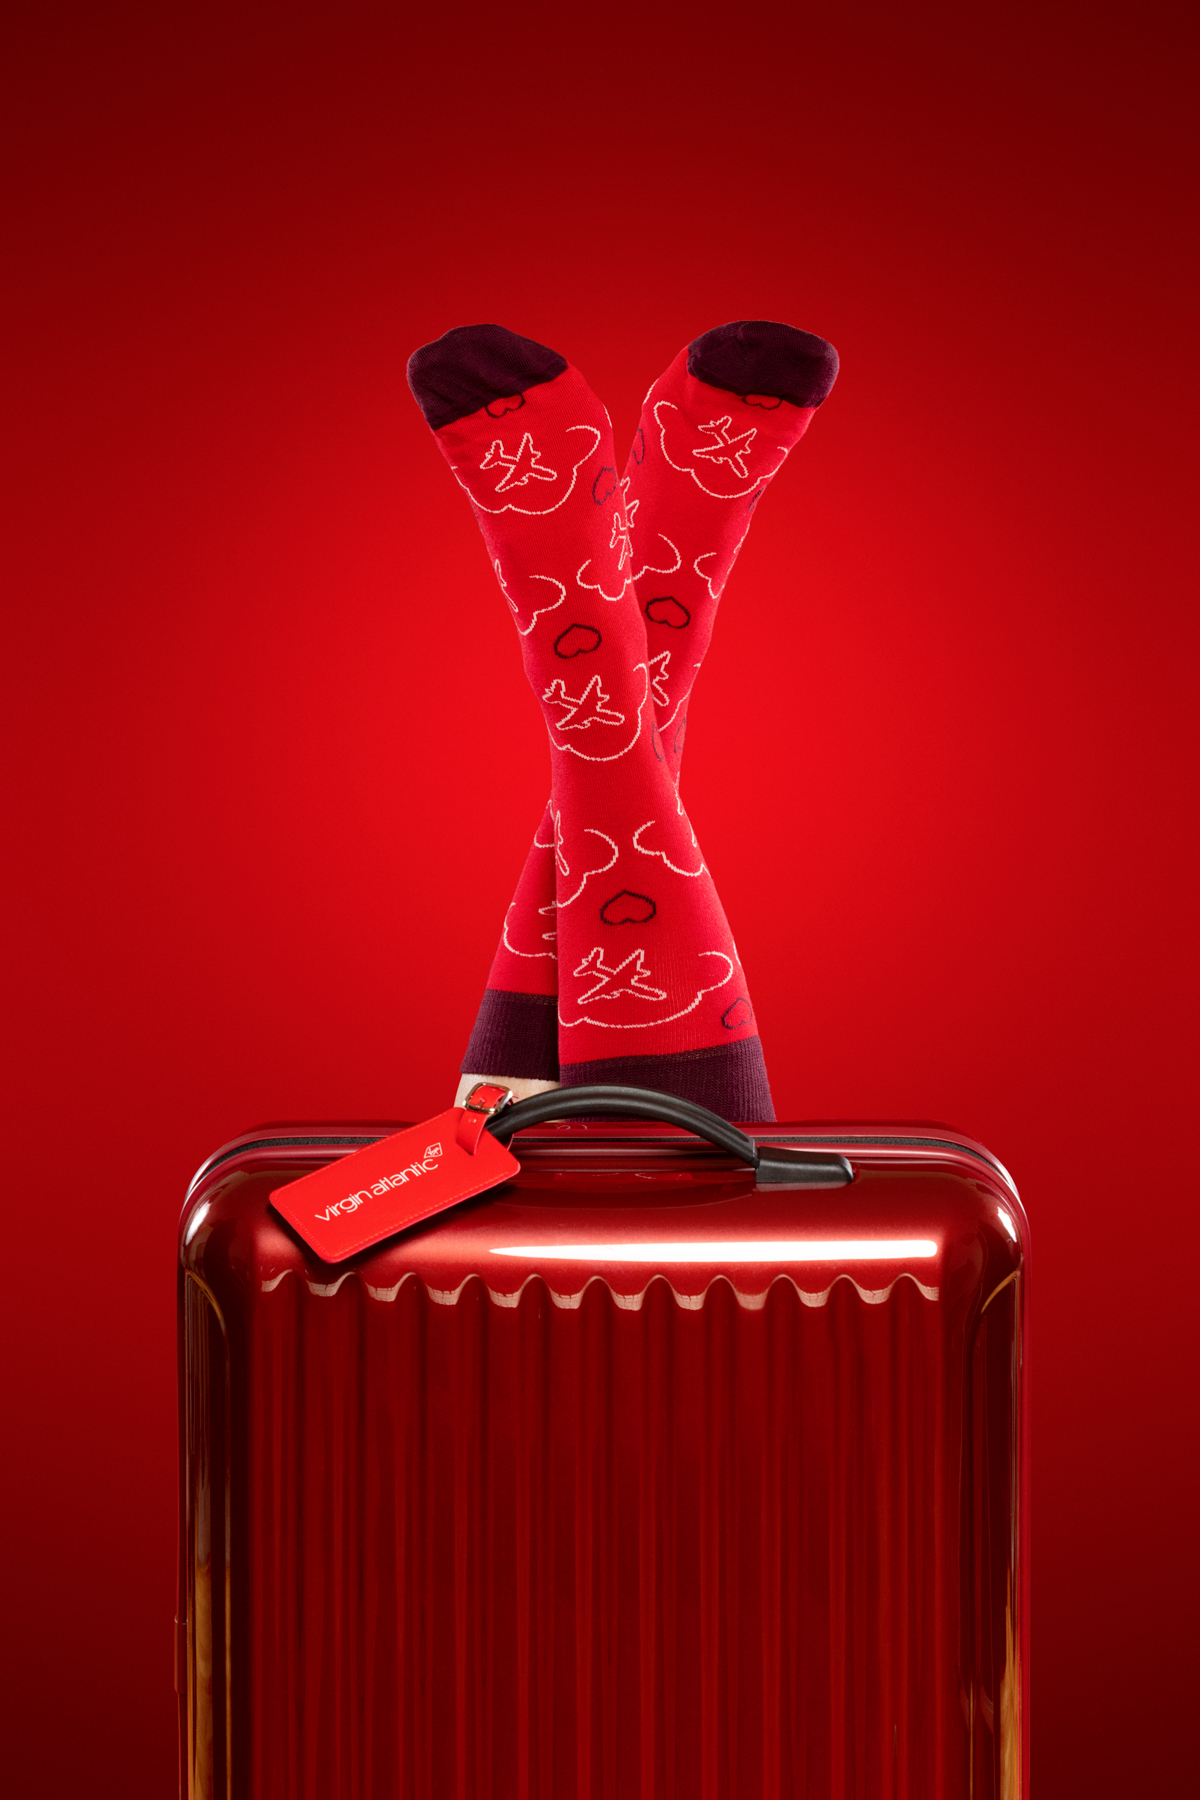 Virgin Atlantic's bespoke socks by Happy Socks